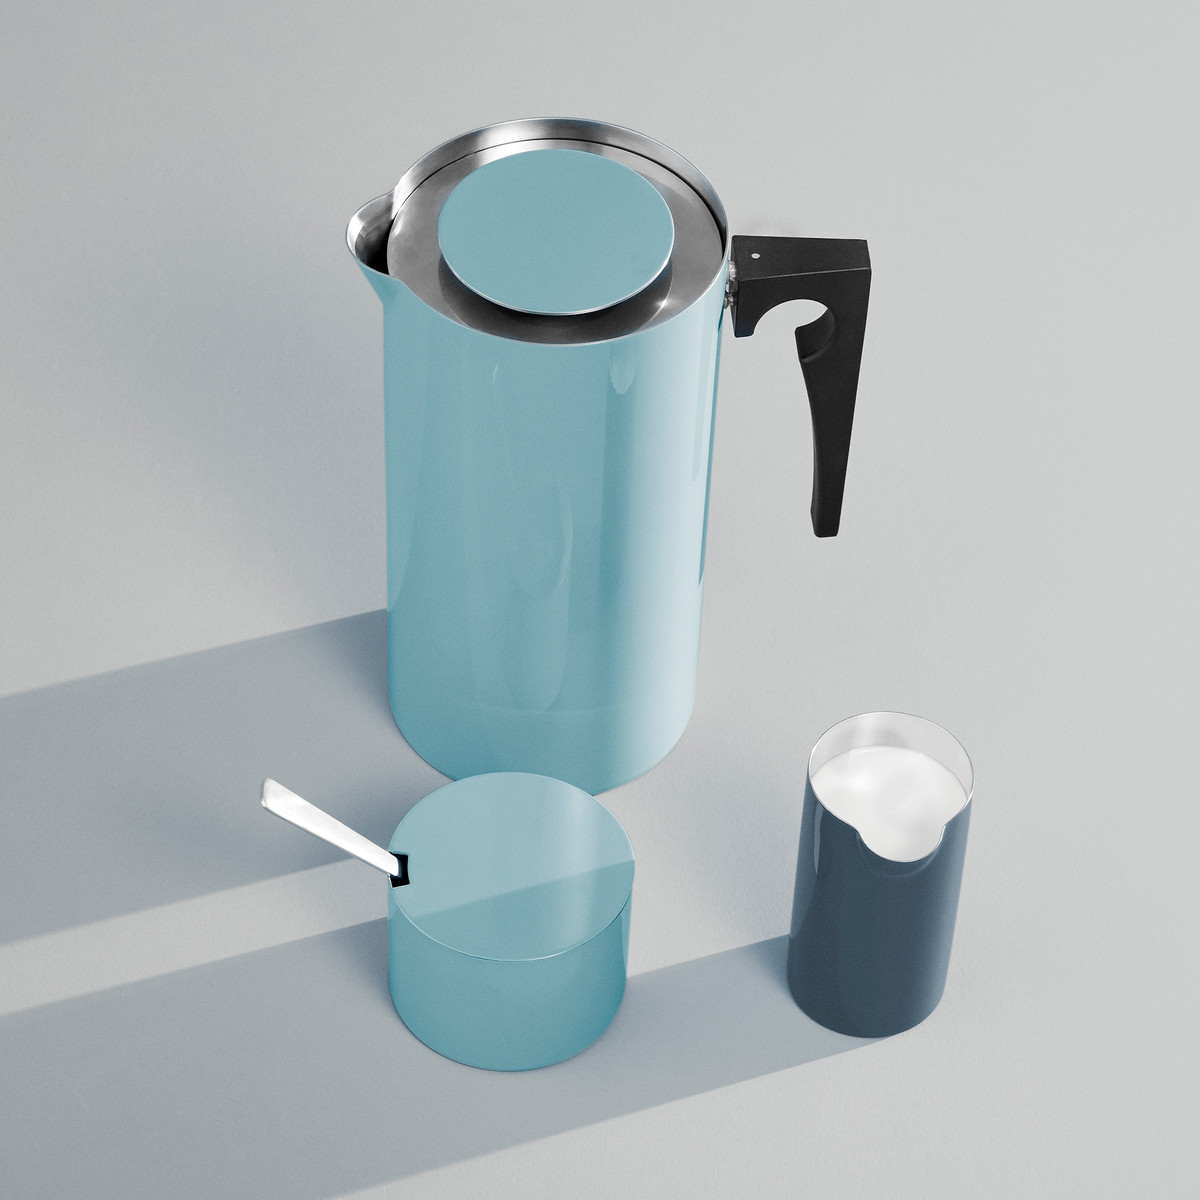 Stelton - Kitchenware Cylinda press coffee maker and sugar bowl in blue and milk jug in ocean blue